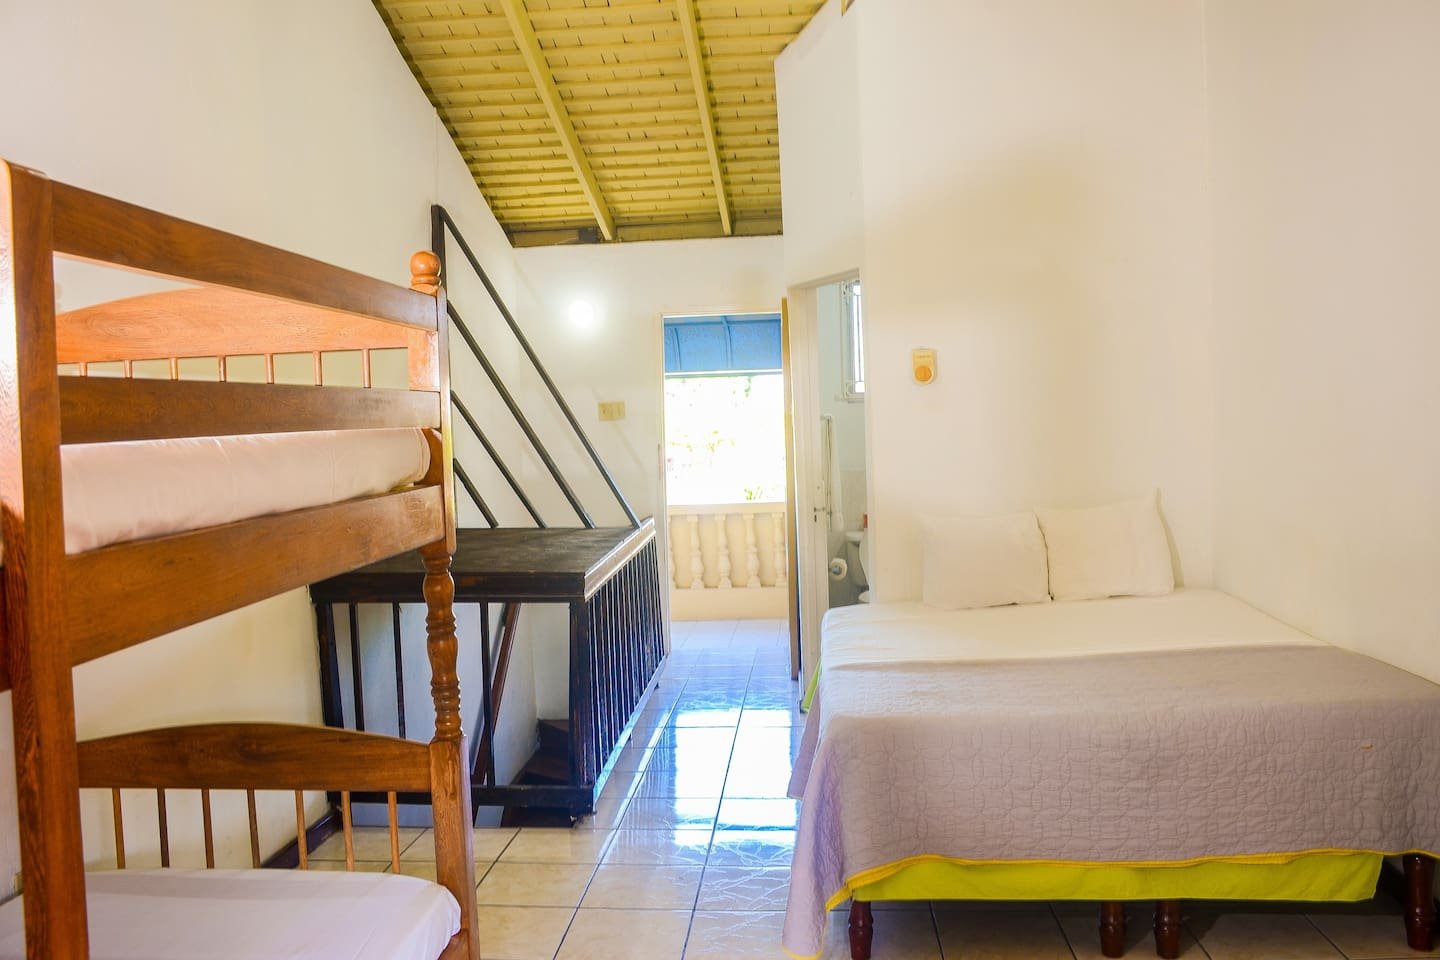 Loft room situated at the front of Reggae Hostel above reception. The room is very basic with no hot water but has ceiling fan and ensuite bathroom. The room is very well ventilated with ceiling fan.  The views are the best feature of the  room.